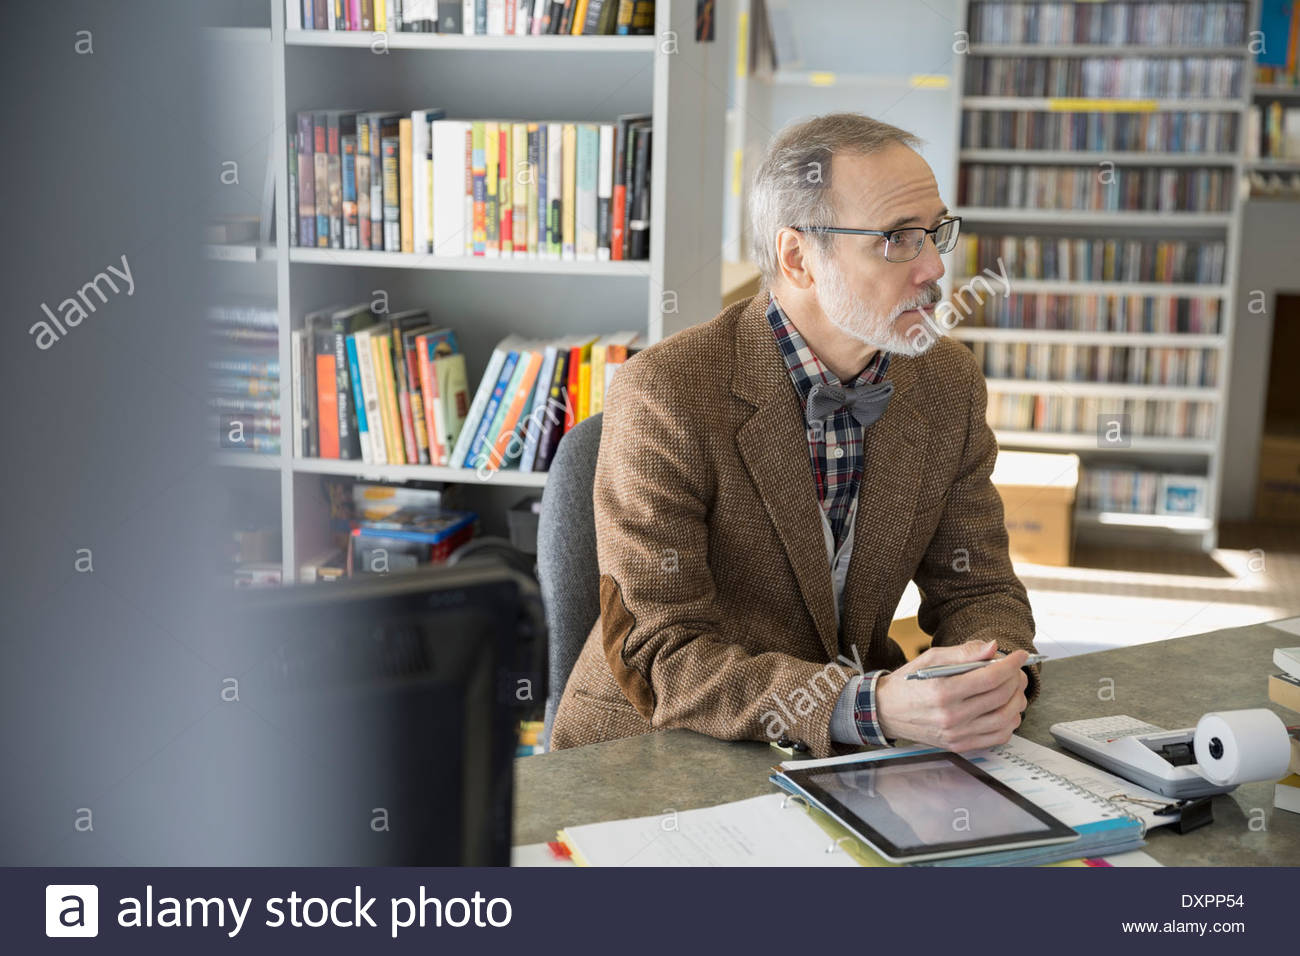 Bookstore owner sitting at counter - Stock Image